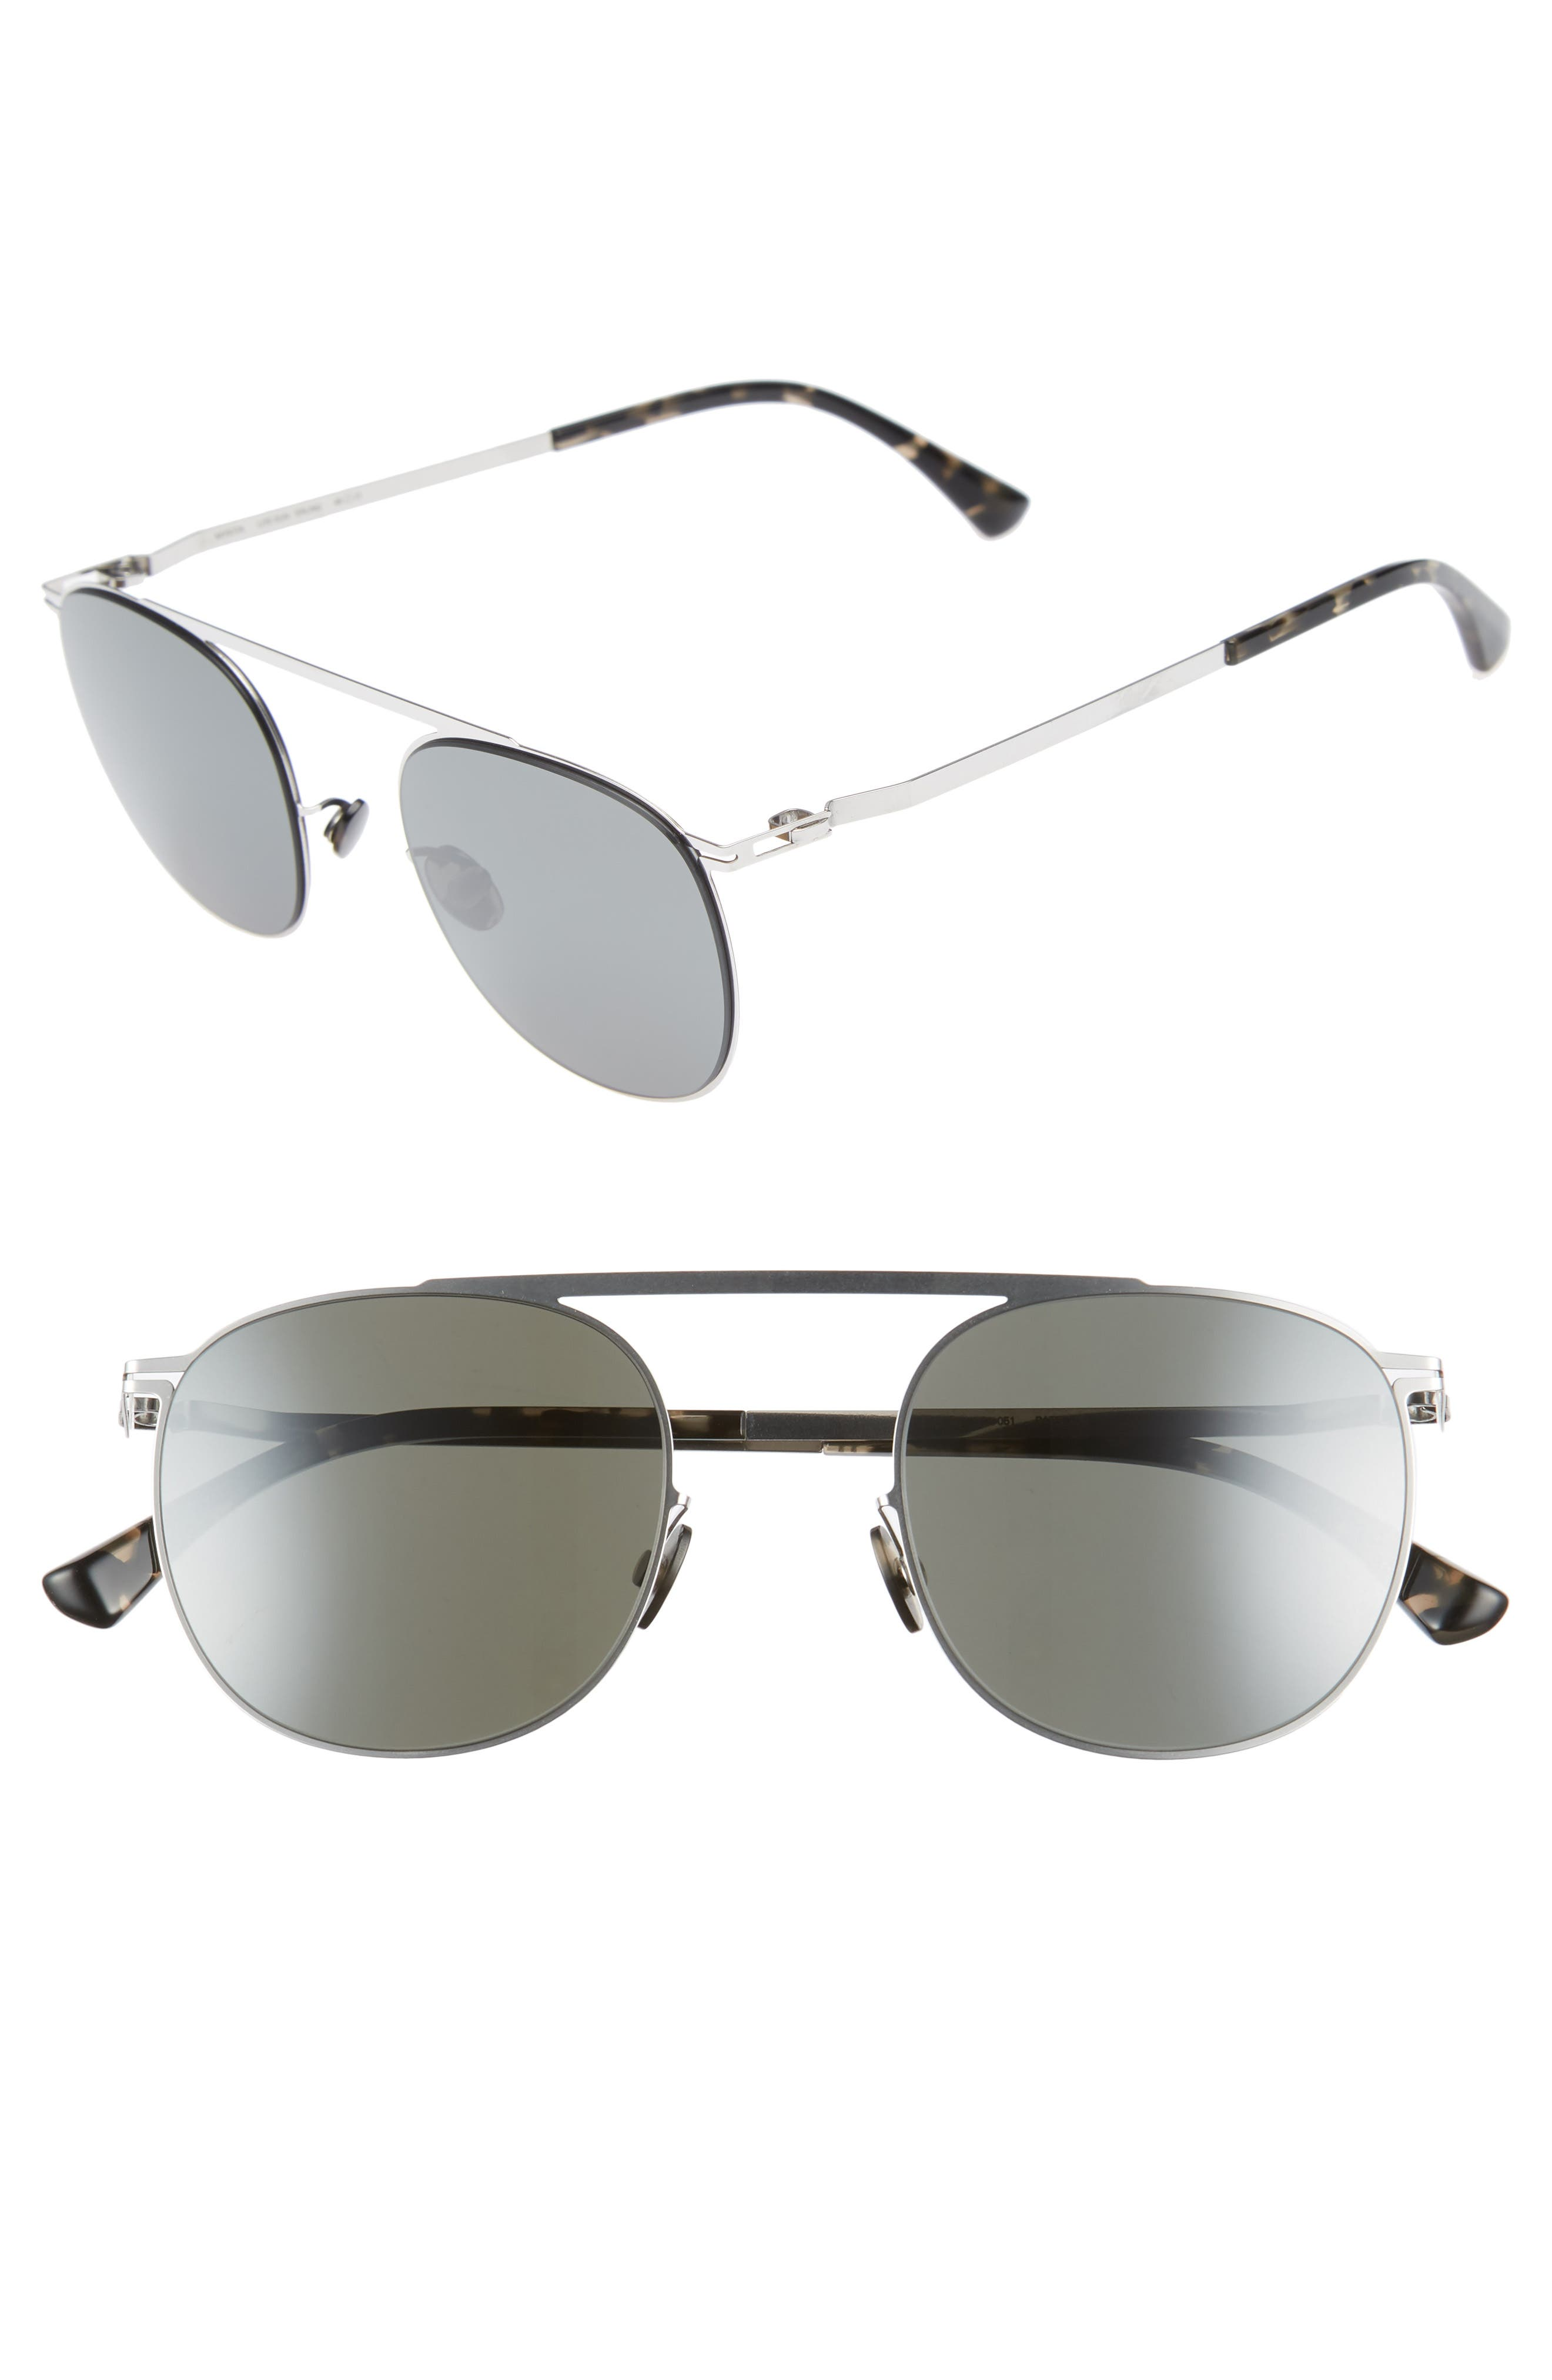 Erling 48mm Mirrored Sunglasses,                         Main,                         color, Shiny Silver